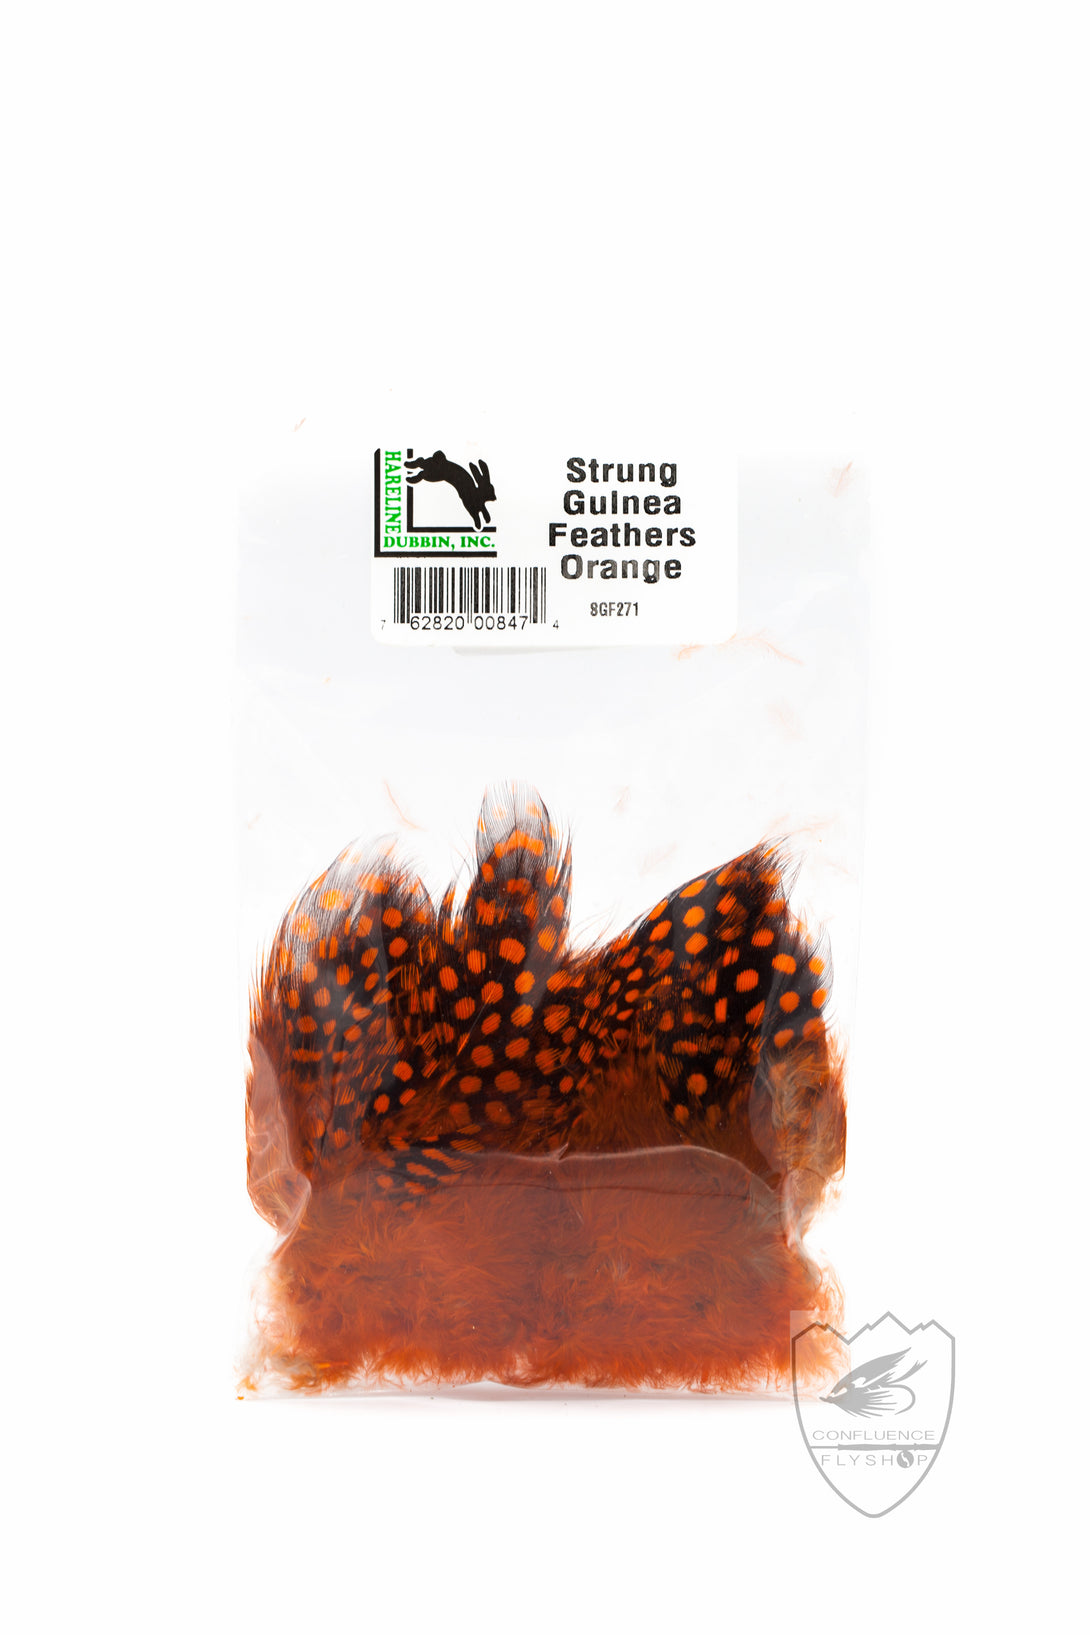 Strung Guinea Feathers,Feathers,HARELINE DUBBIN INC.-Confluence Fly Shop